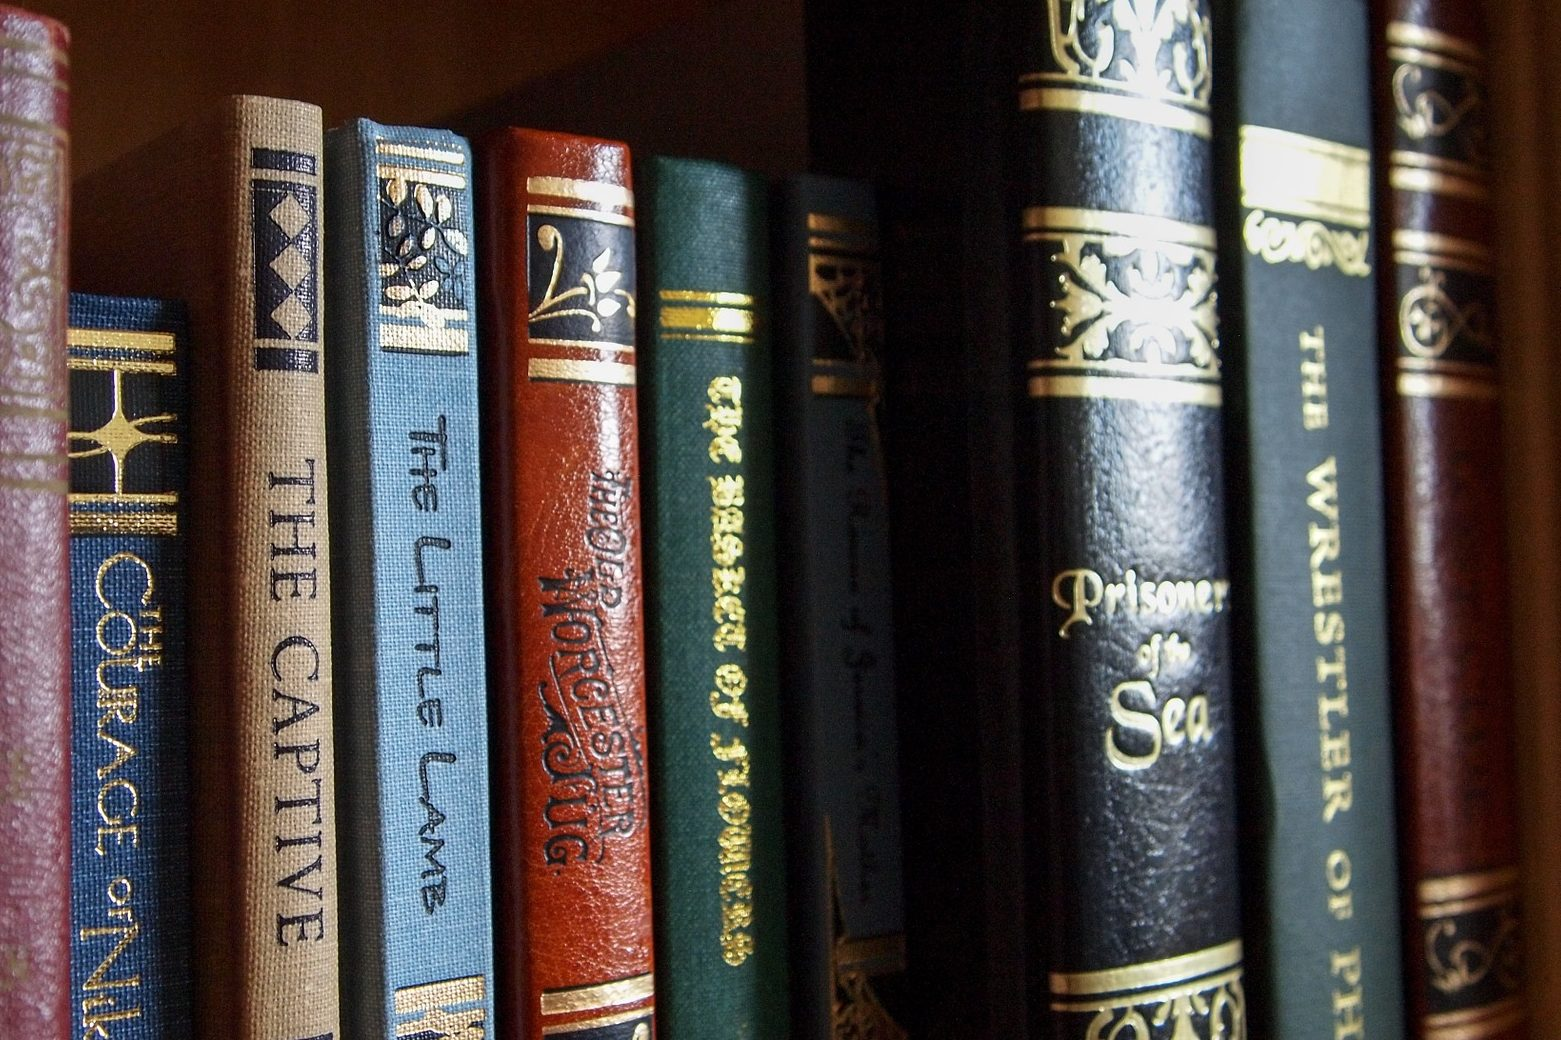 a row of Lamplighter books